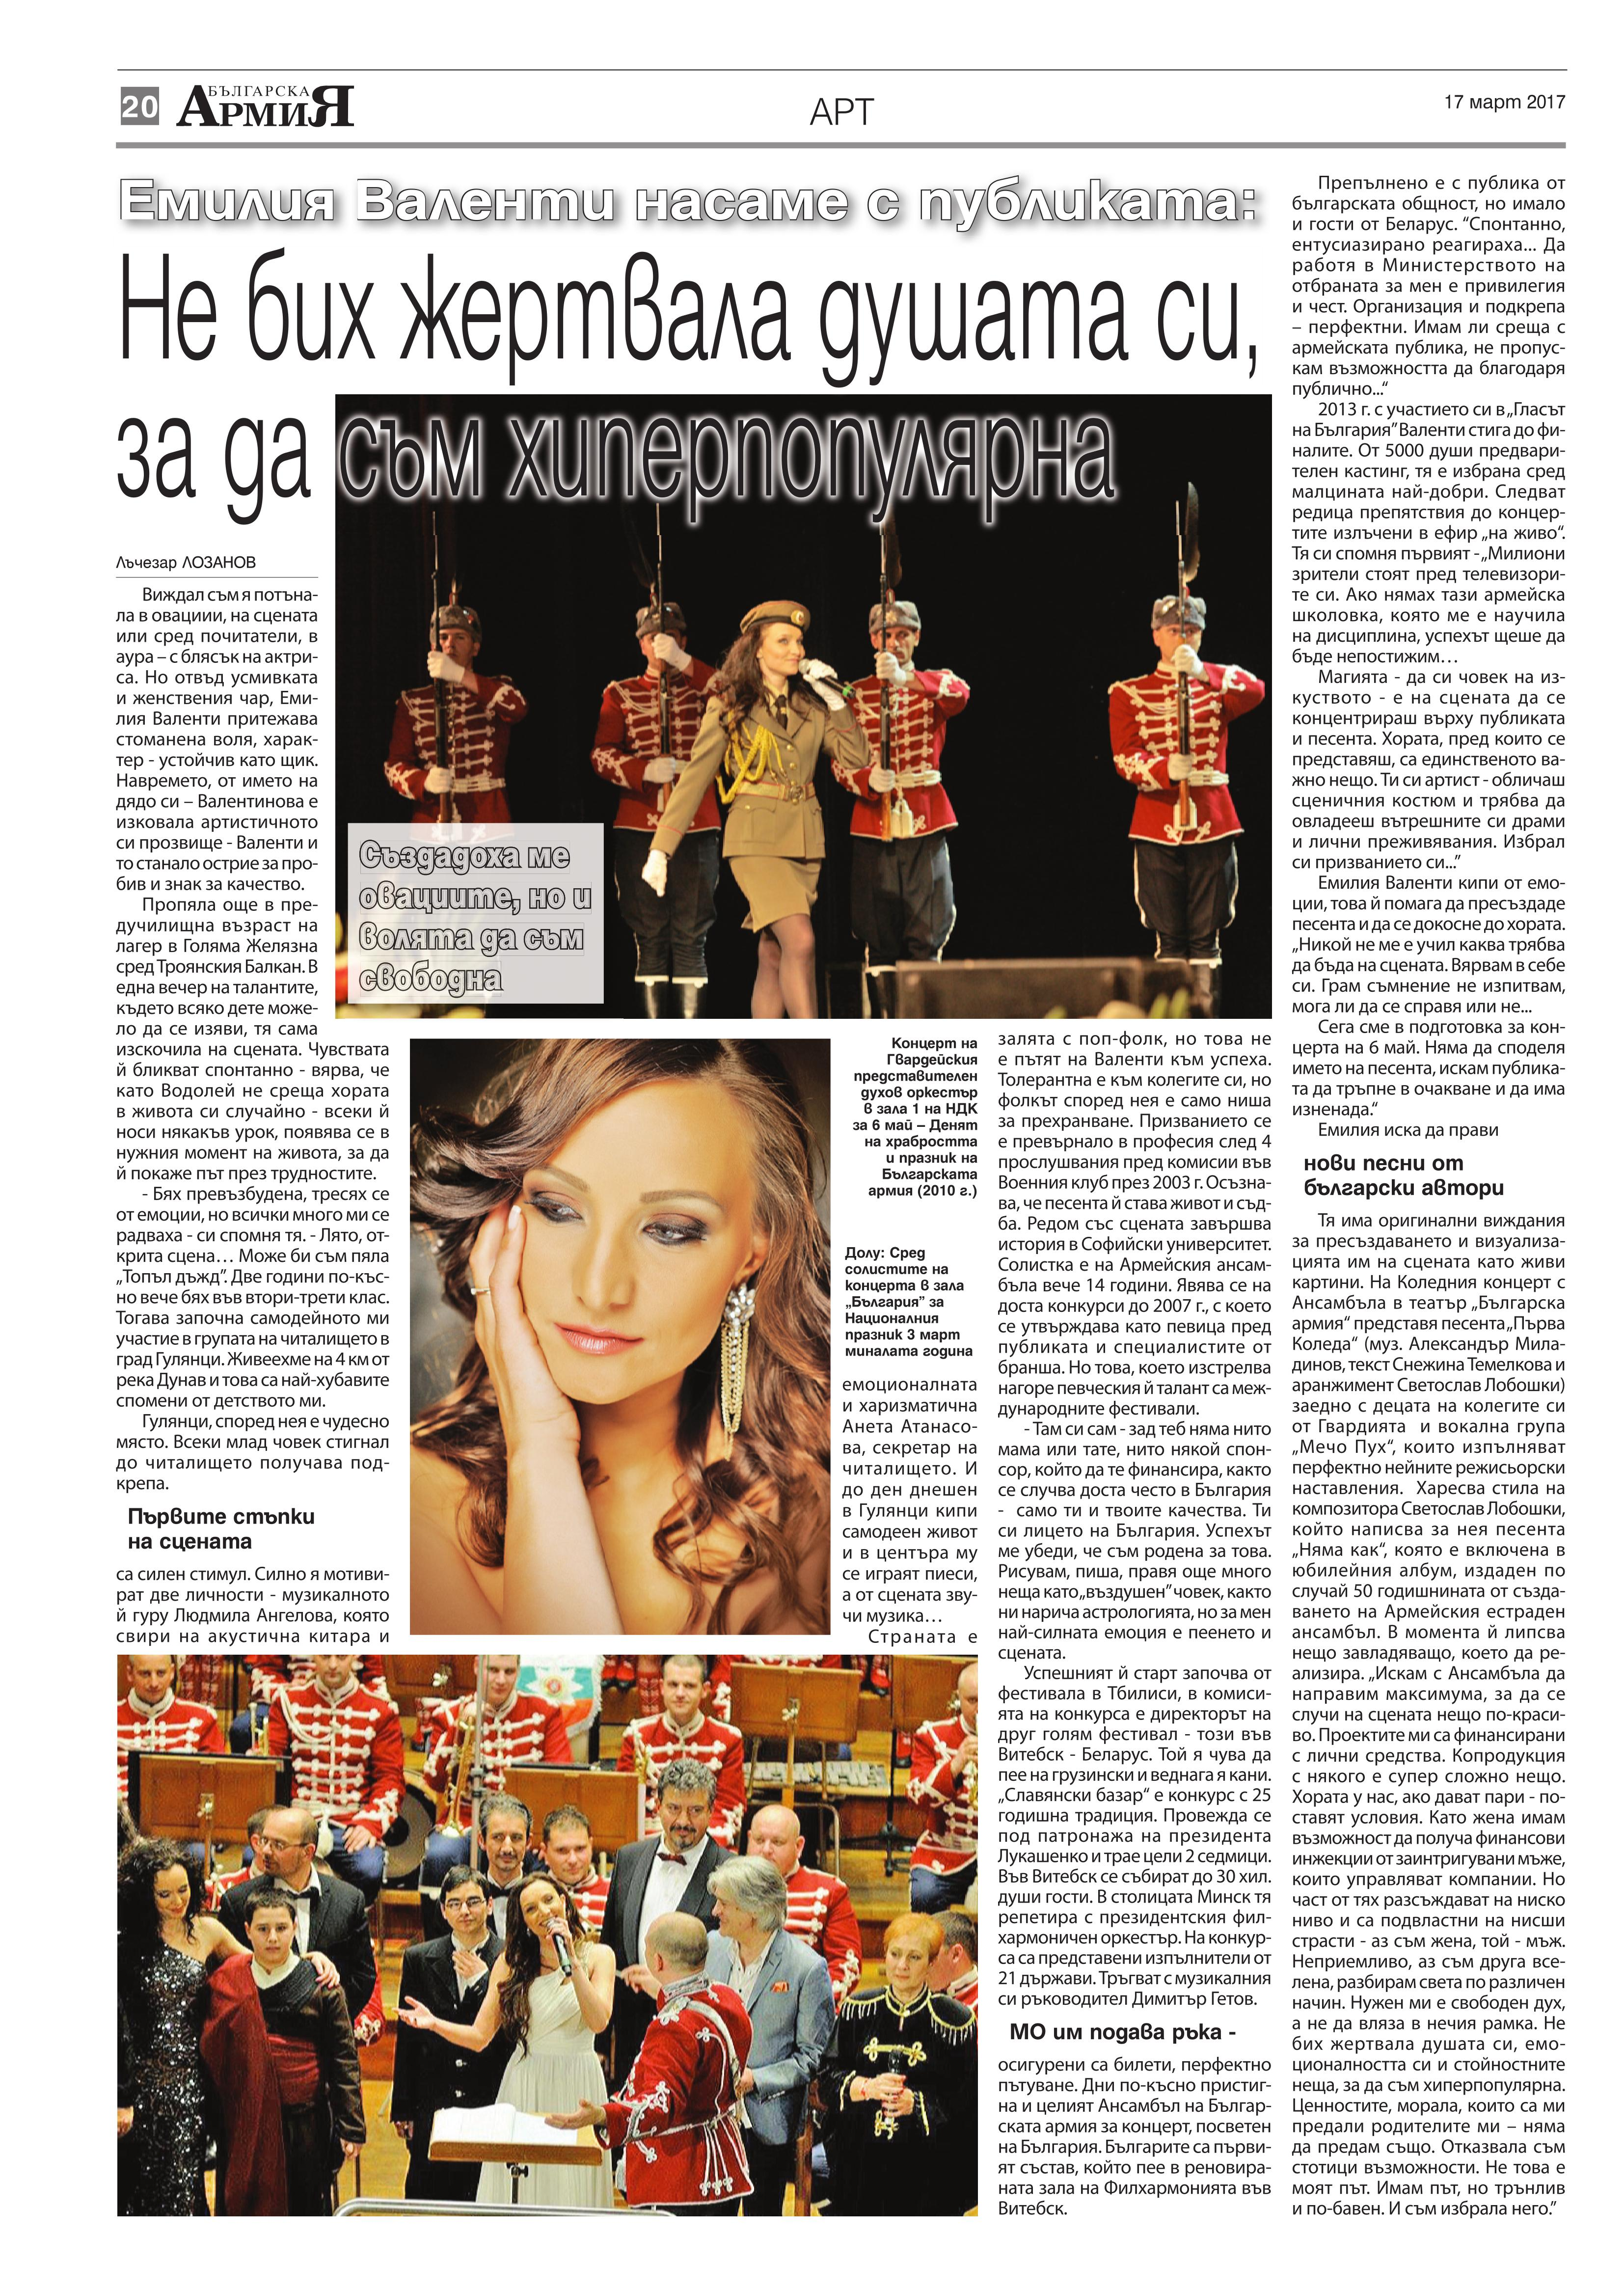 https://www.armymedia.bg/wp-content/uploads/2015/06/20.page1_-17.jpg